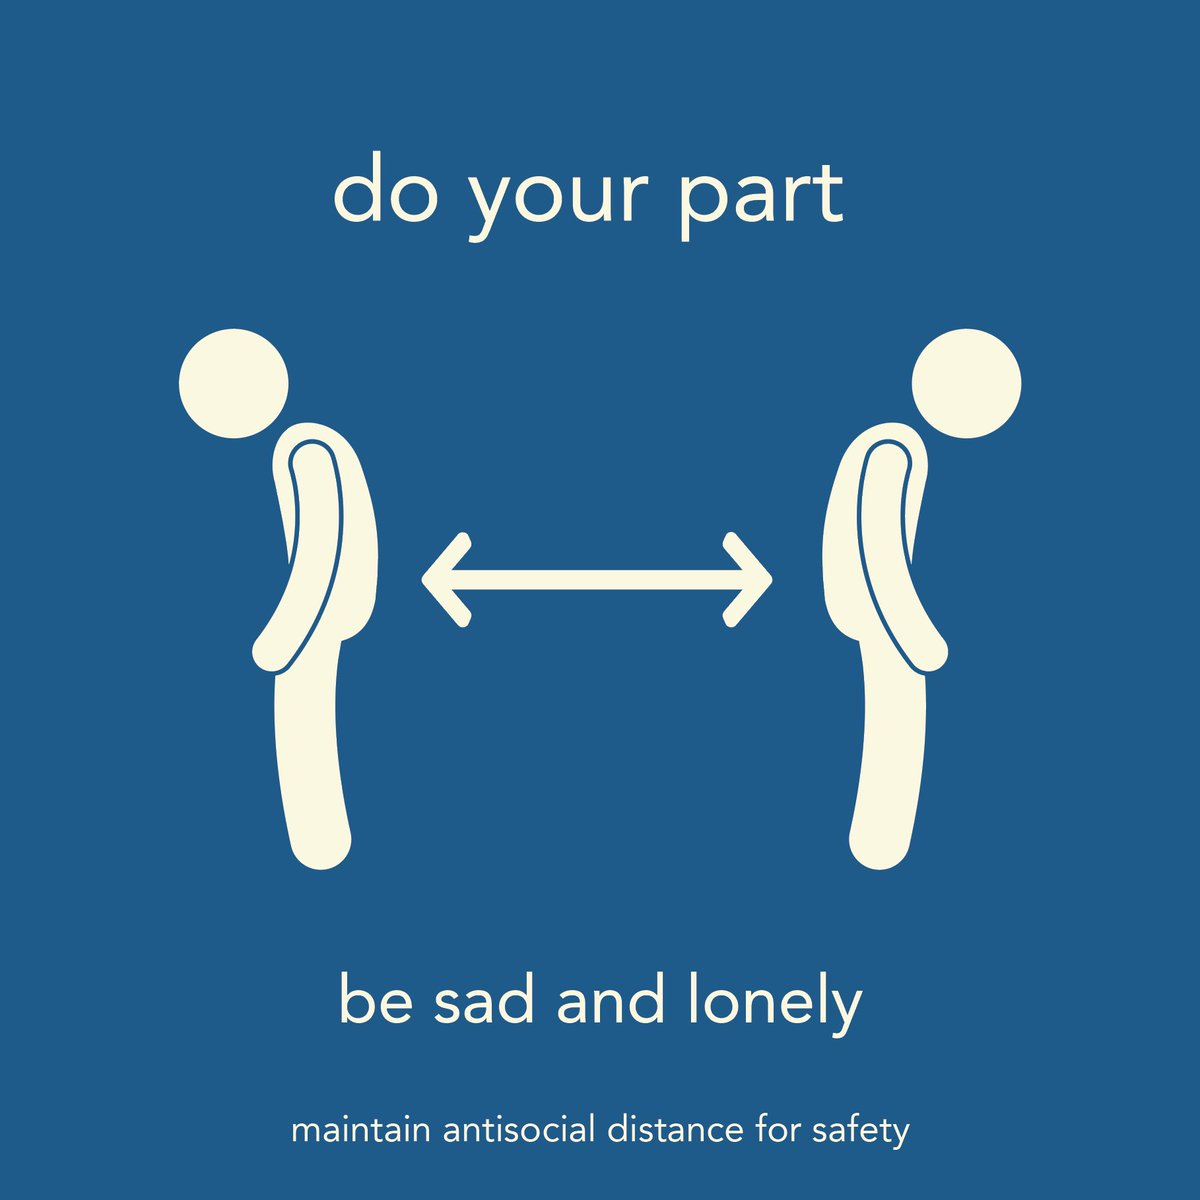 be safe. be sad. be lonely.